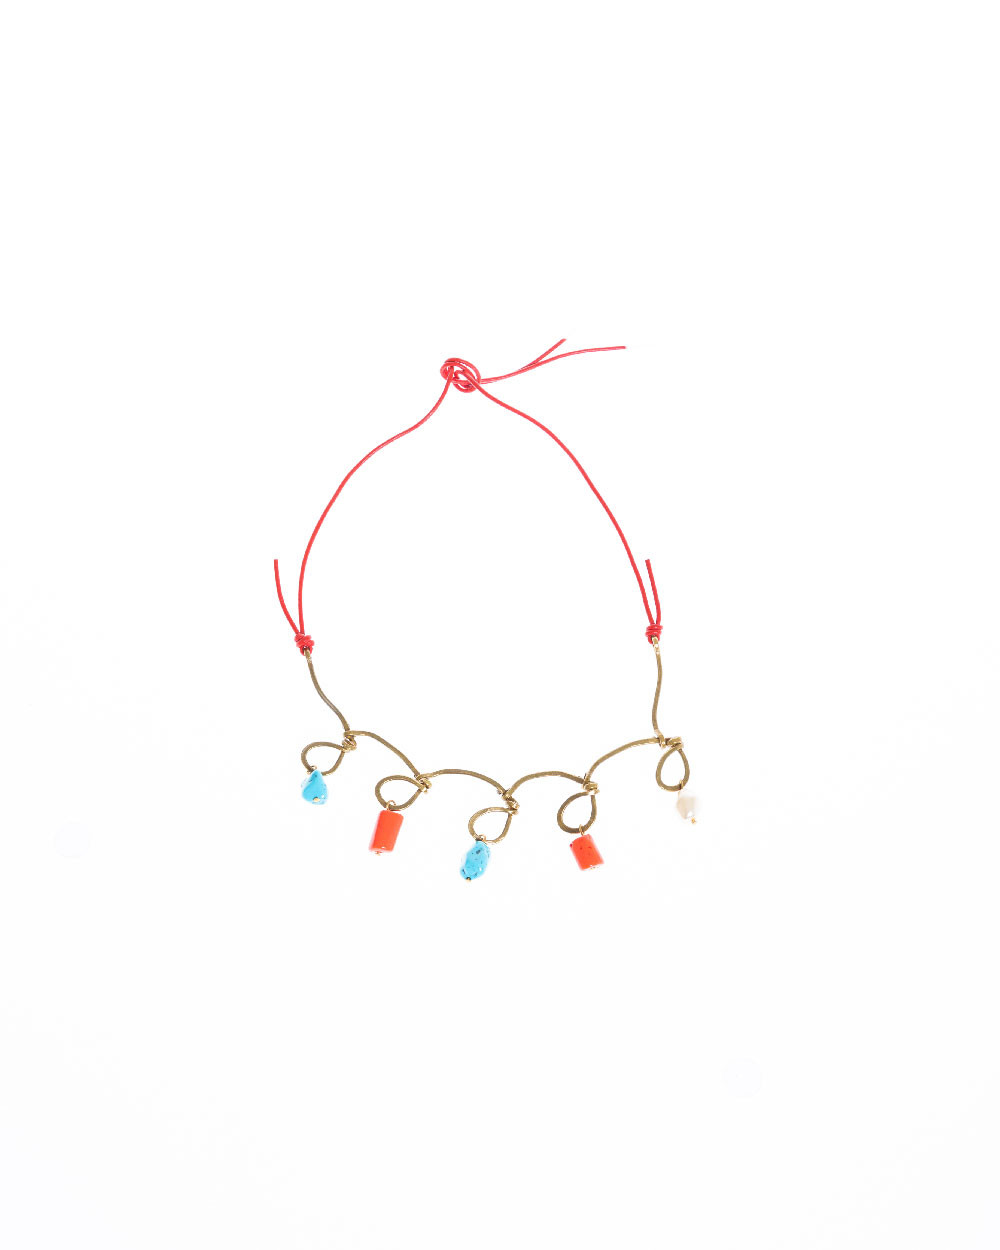 Collier Marni corail et turquoise